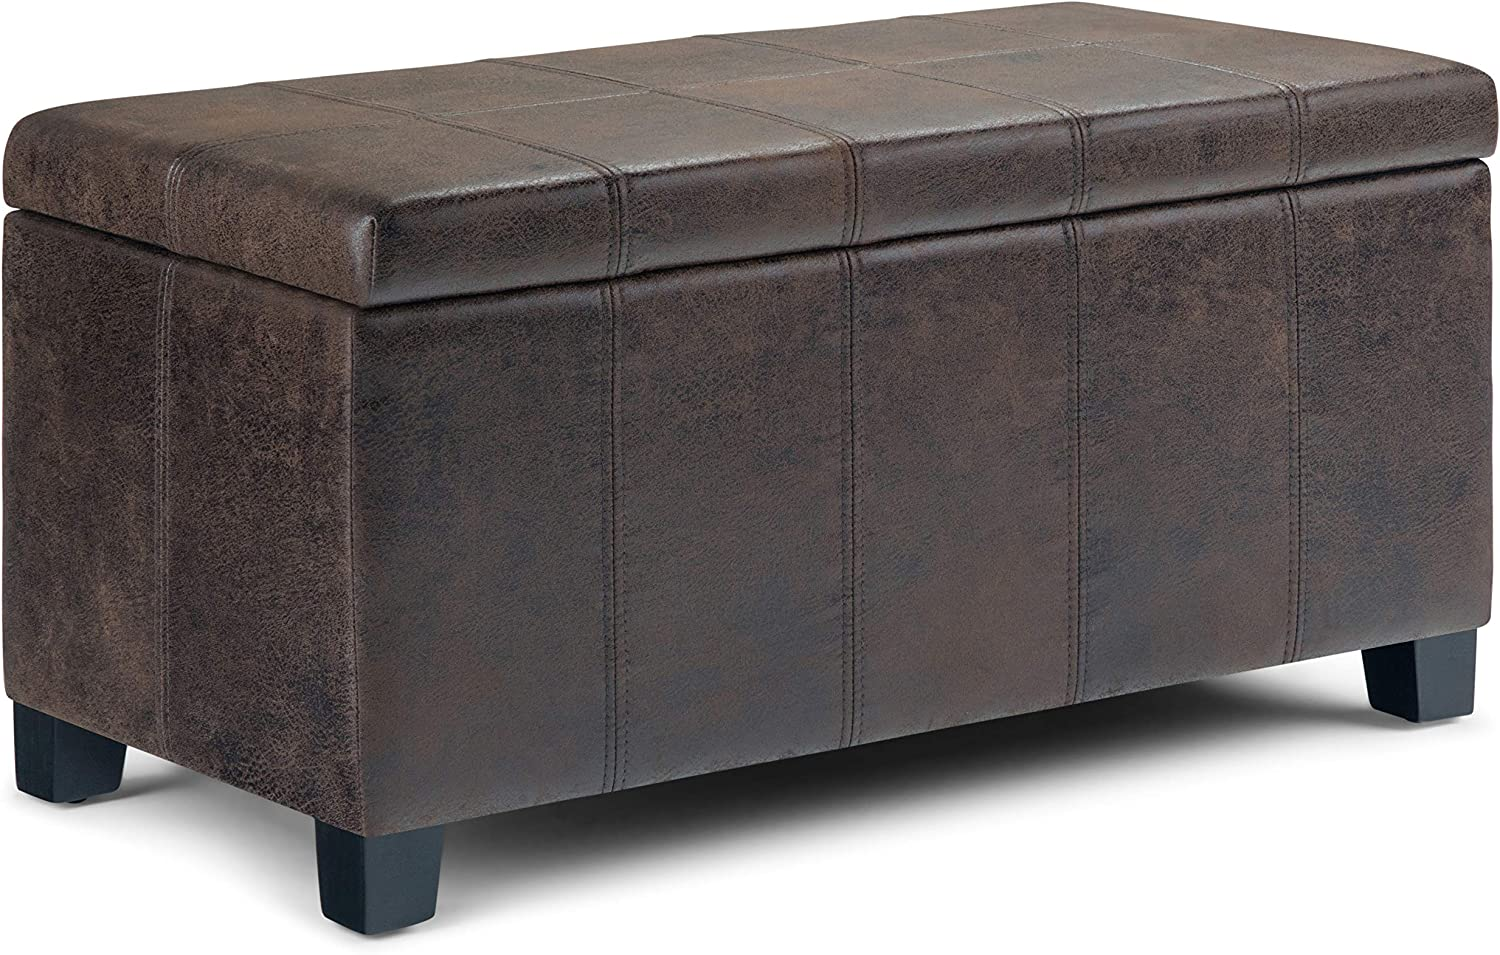 Simpli Home AXCOT-223-DBR Dover 36 inch Wide ContemporaryStorage Ottoman in Distressed Brown Faux Air Leather